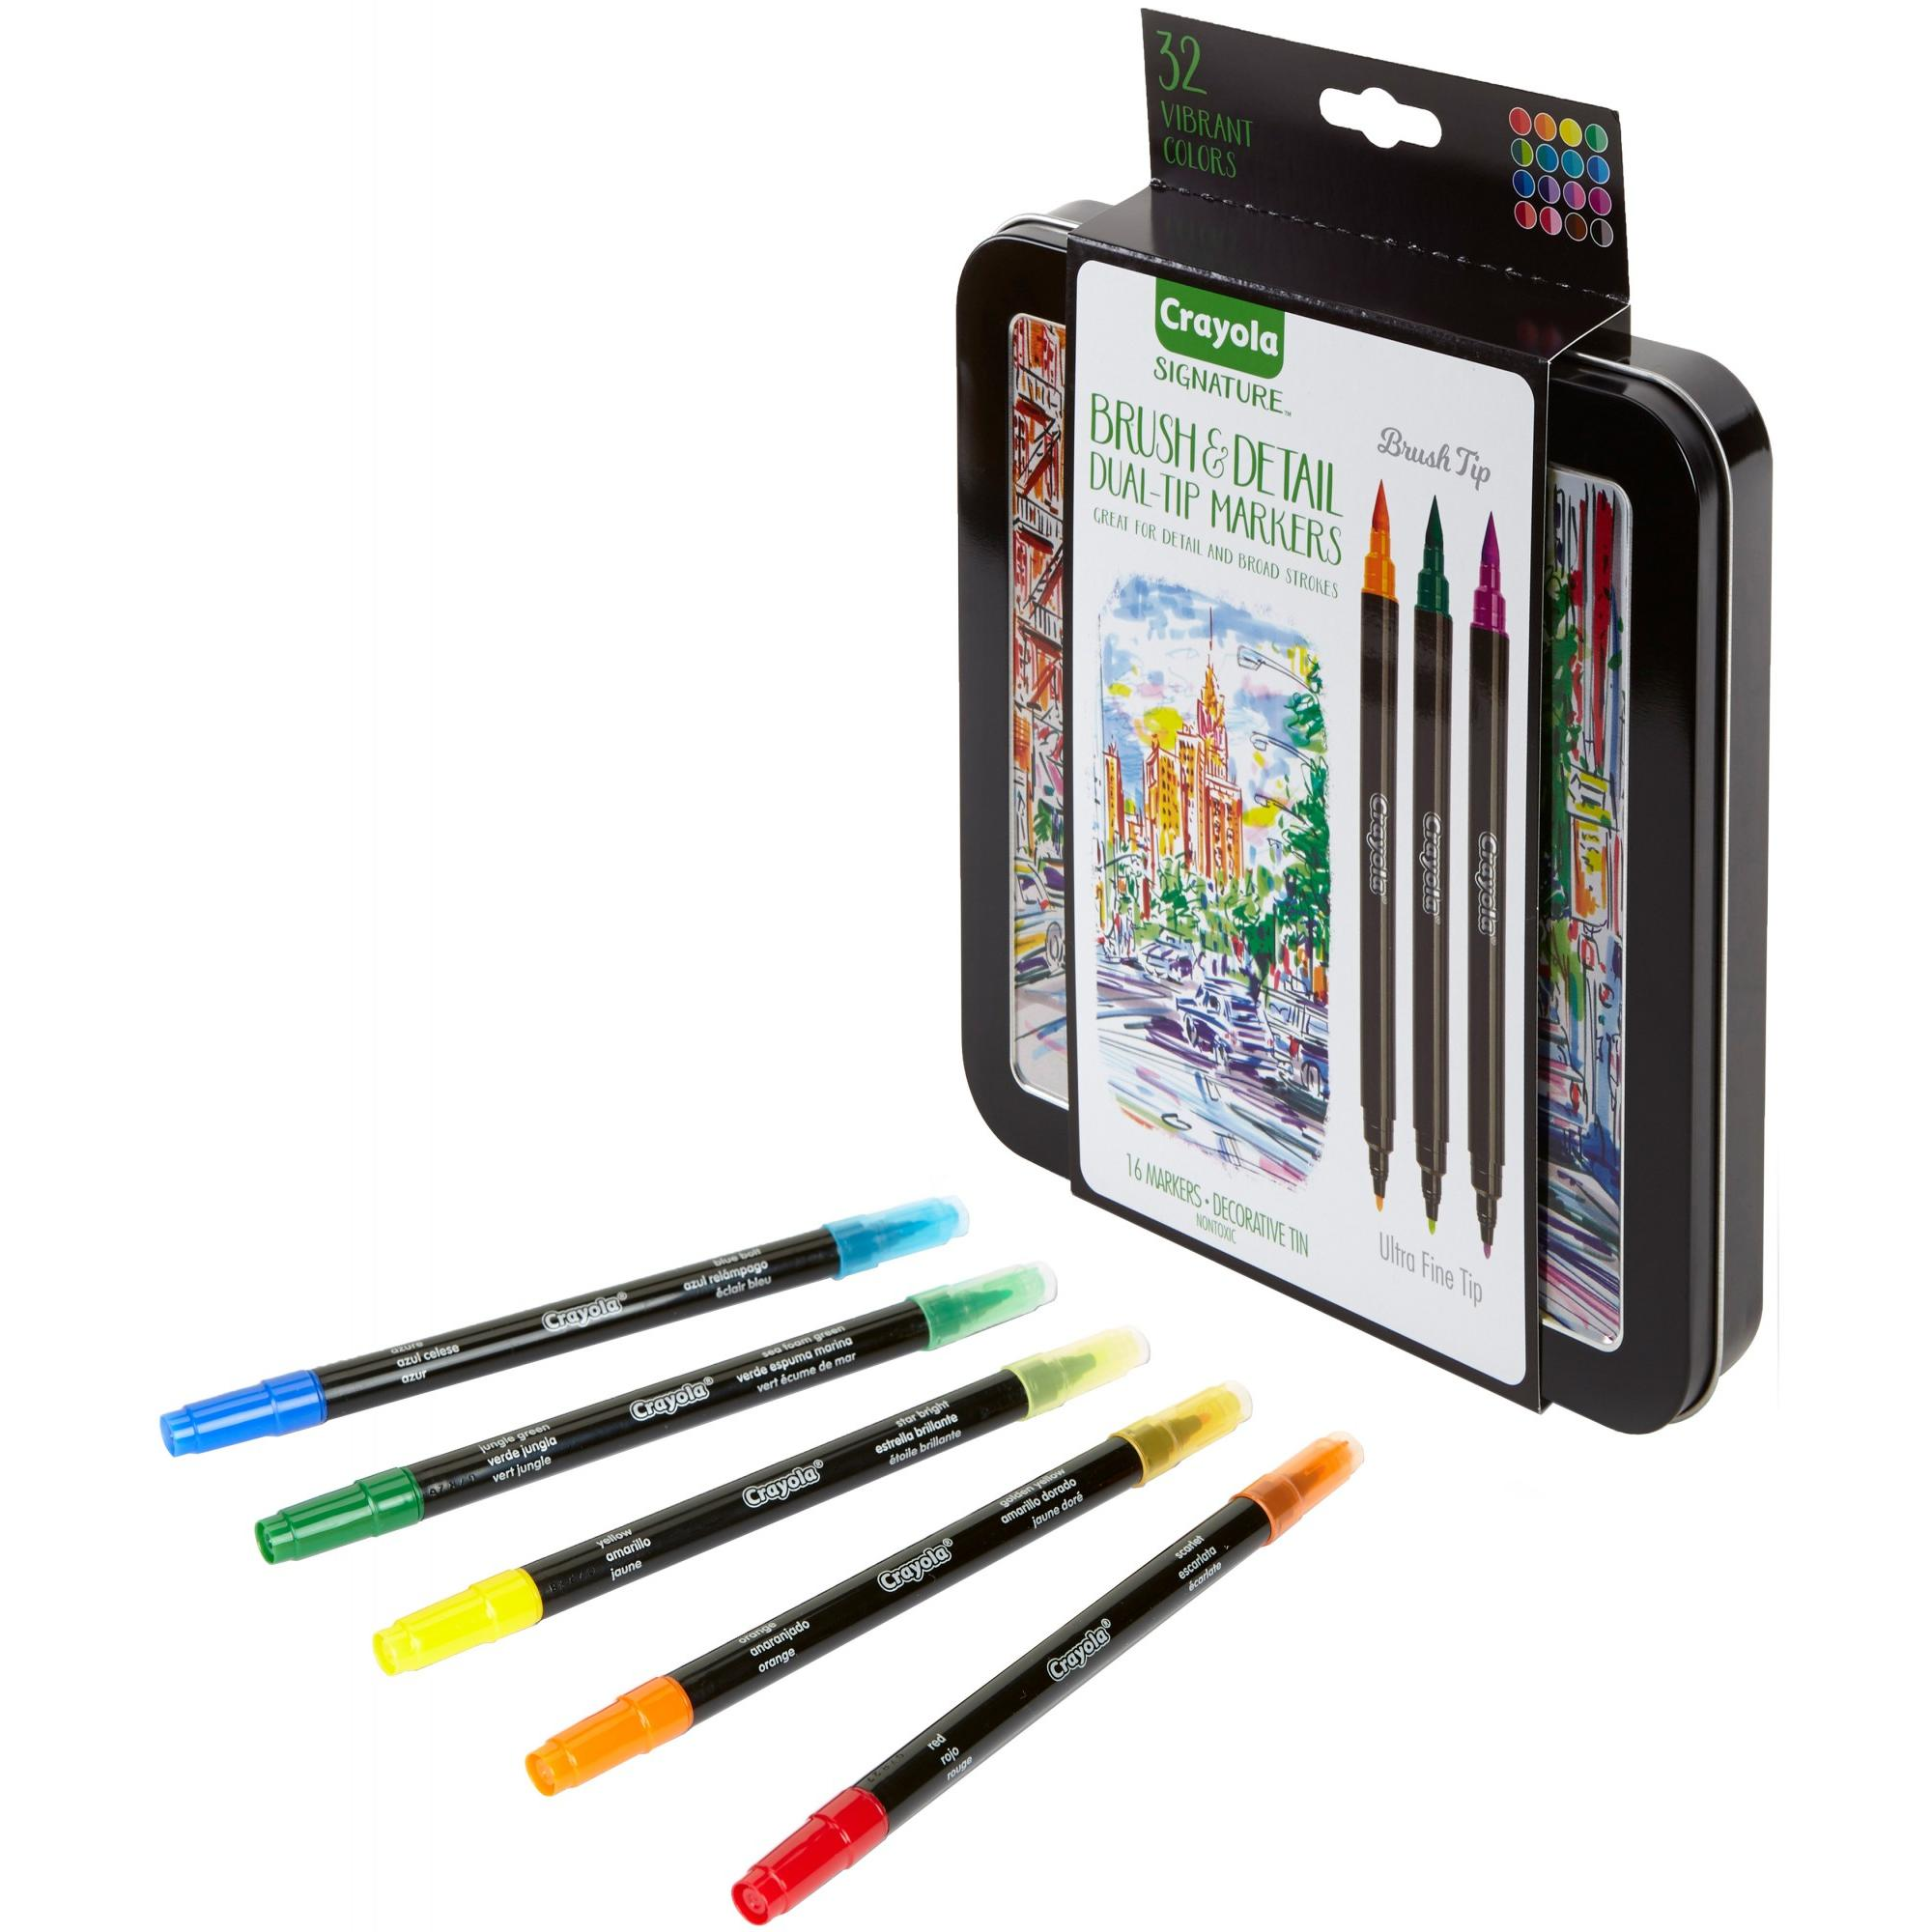 Crayola Signature Brush Detail Dual Tip Markers With Decorative Tin 16 Count Walmart Com